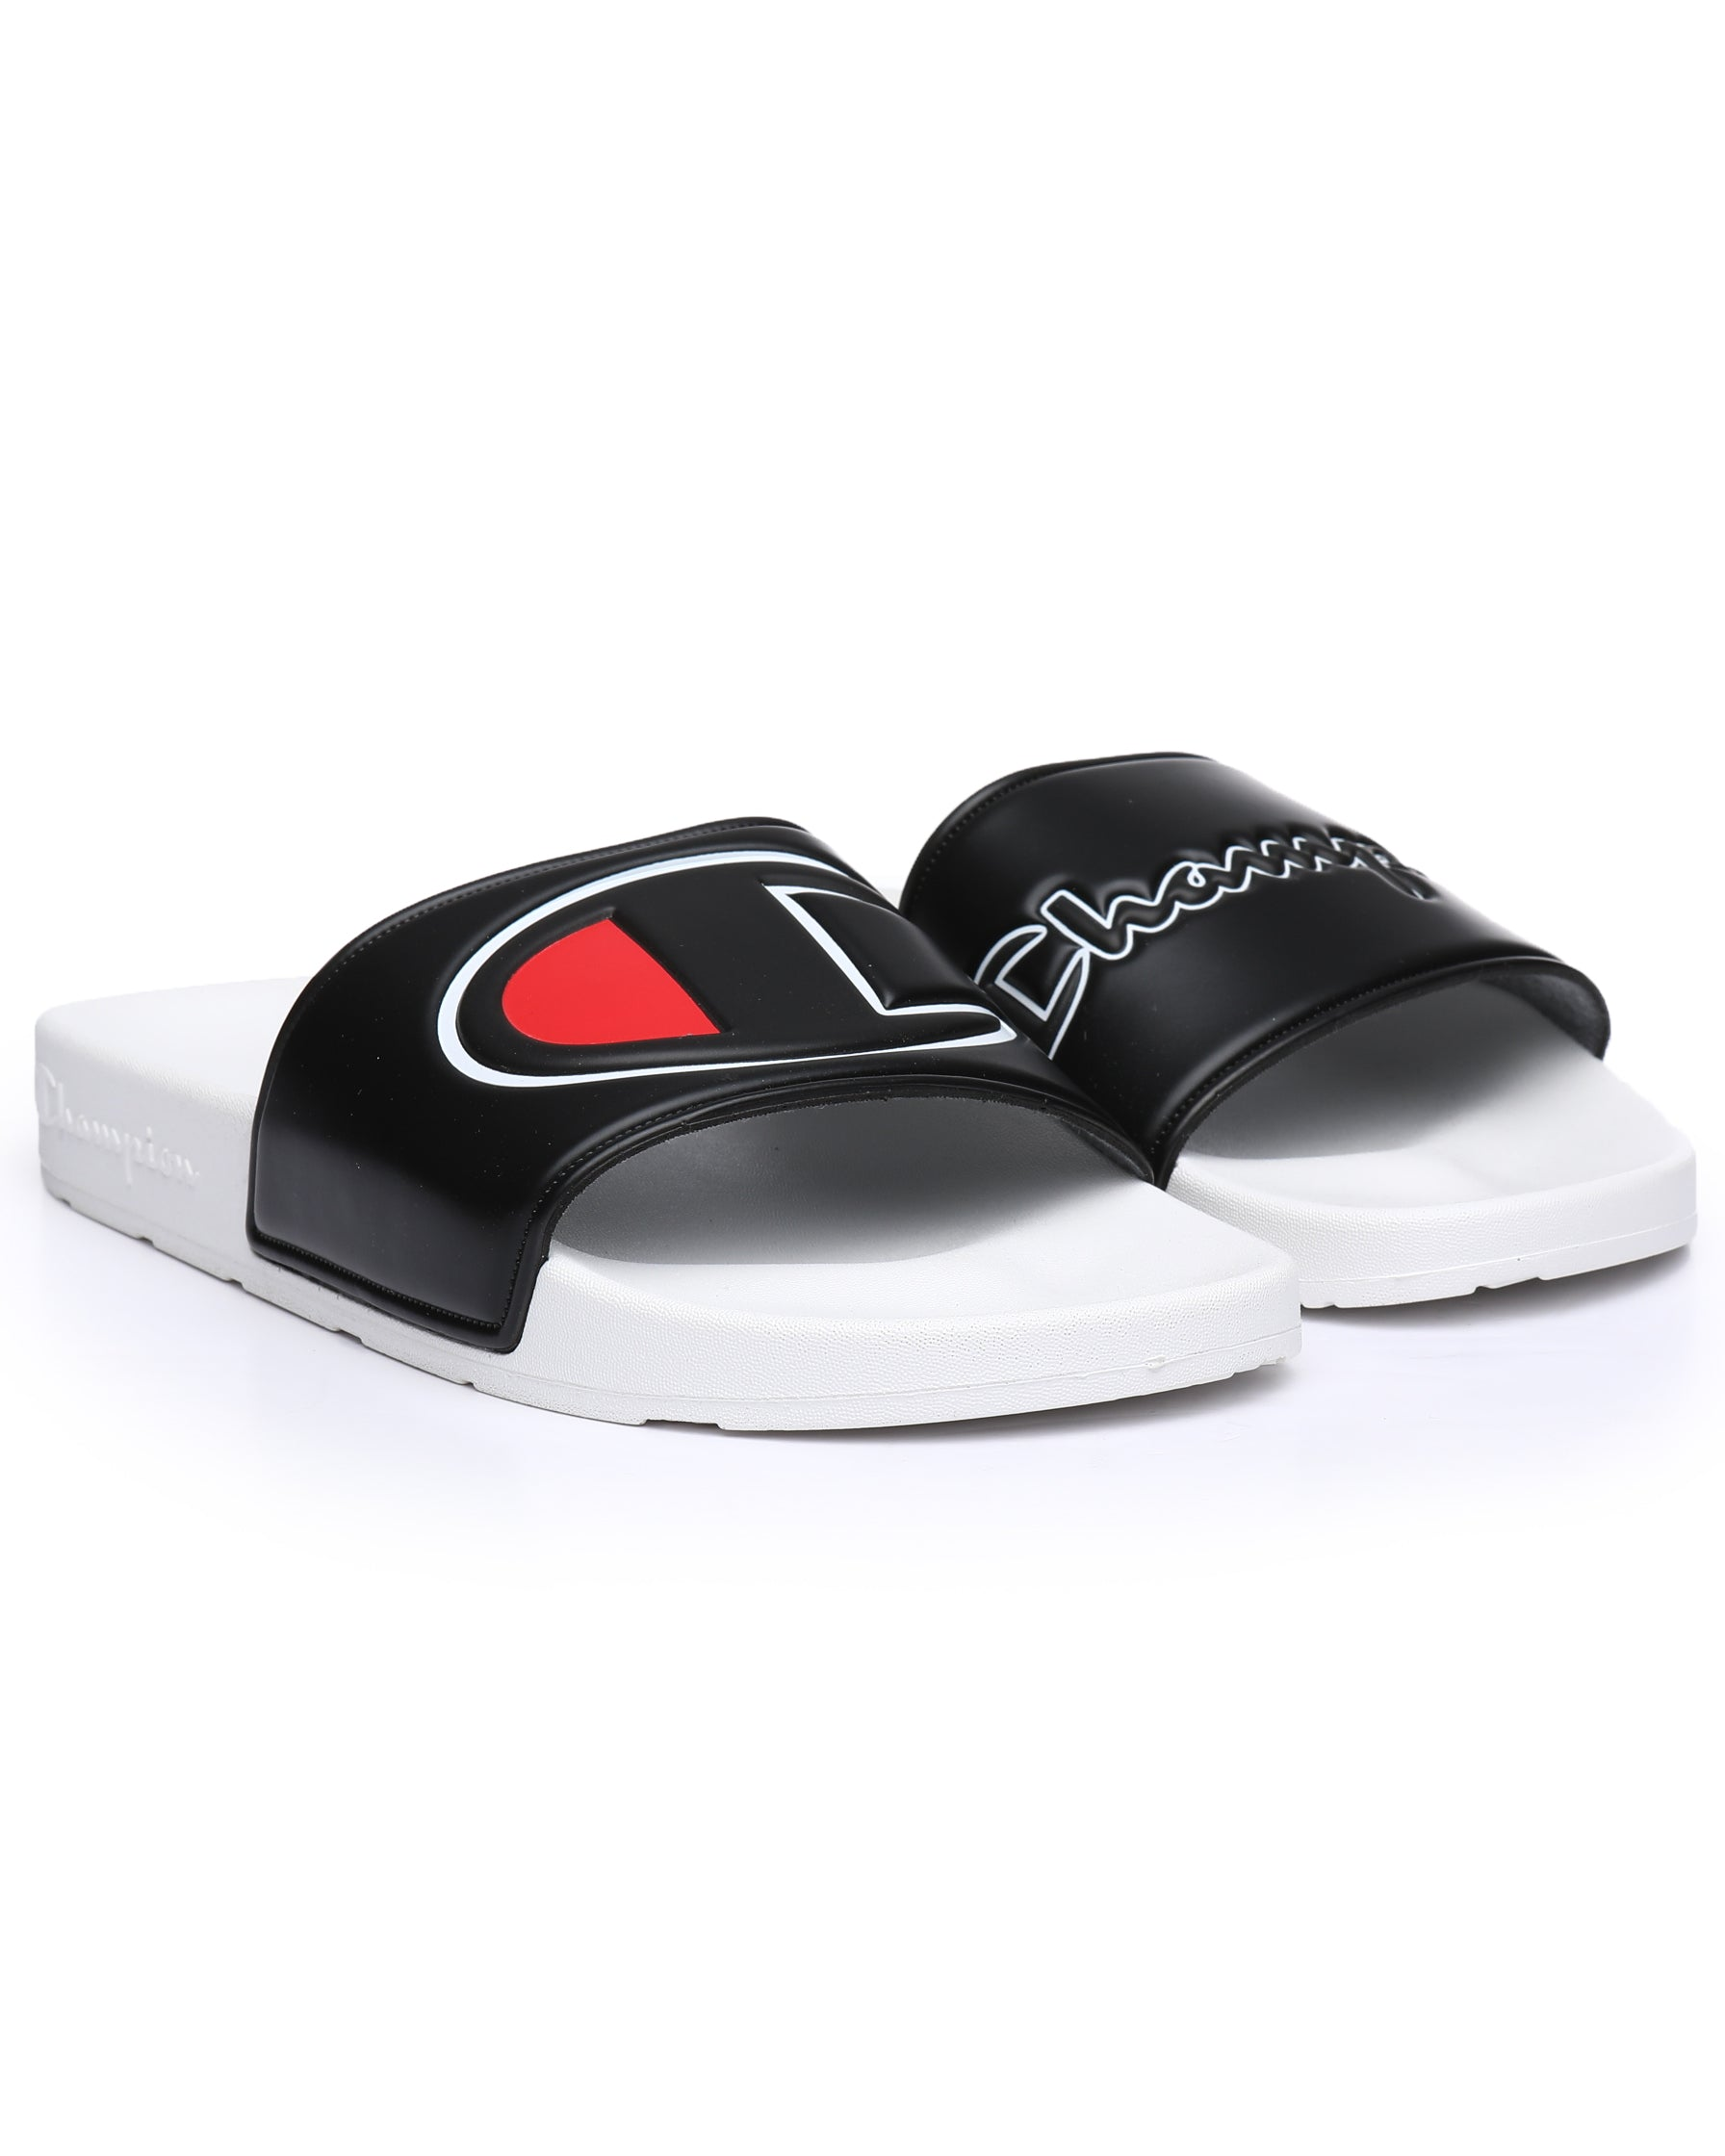 CHAMPION IPO MM DUAL LOGO SLIDE - BOYS' GRADE SCHOOL